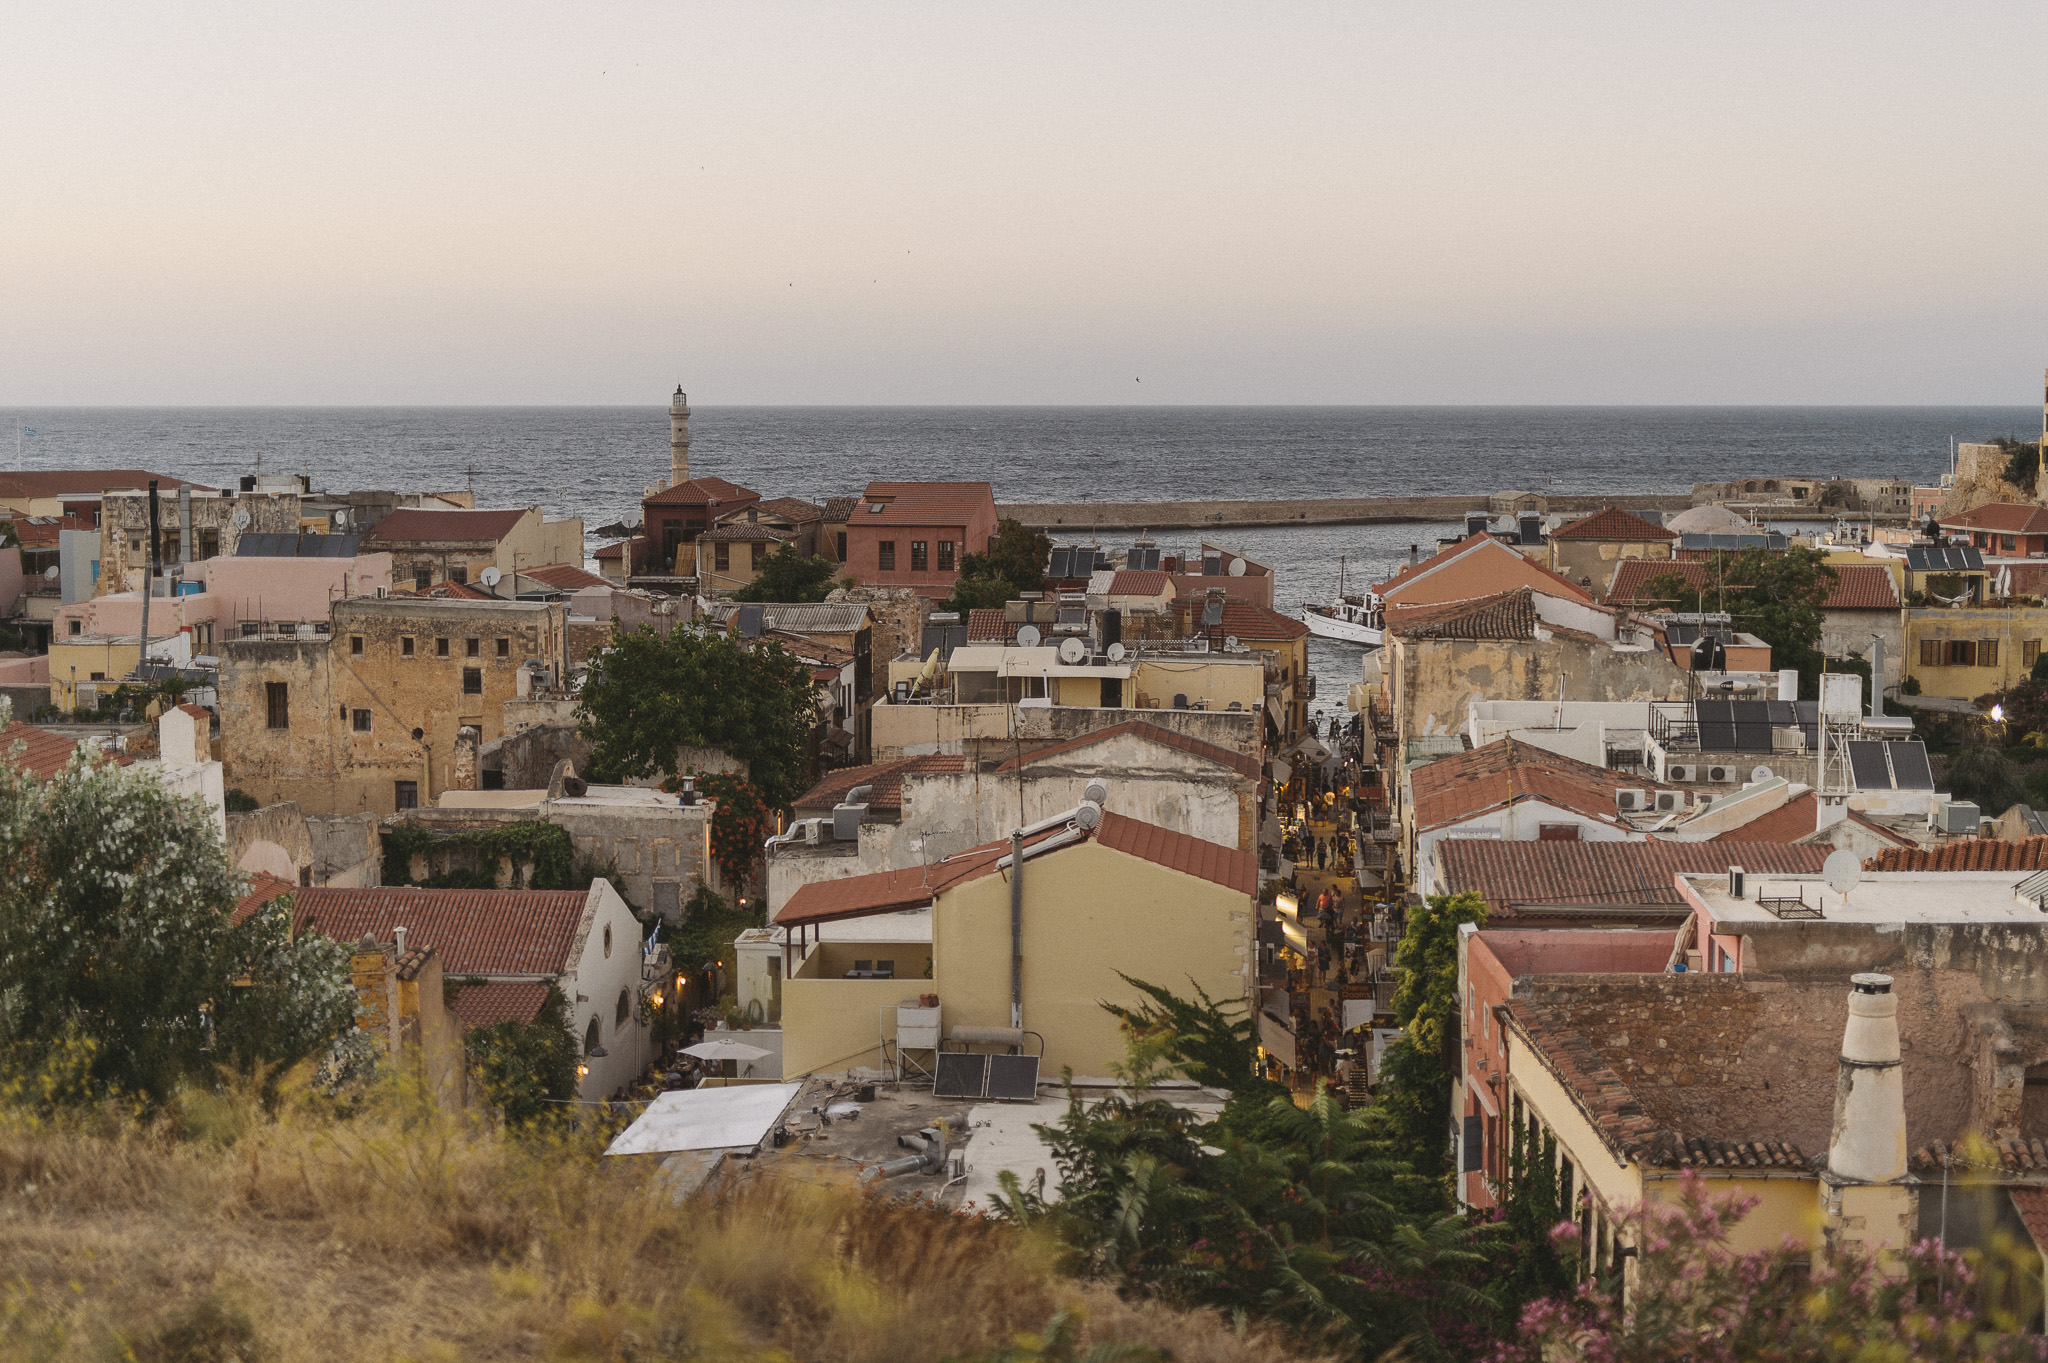 Chania old town from above